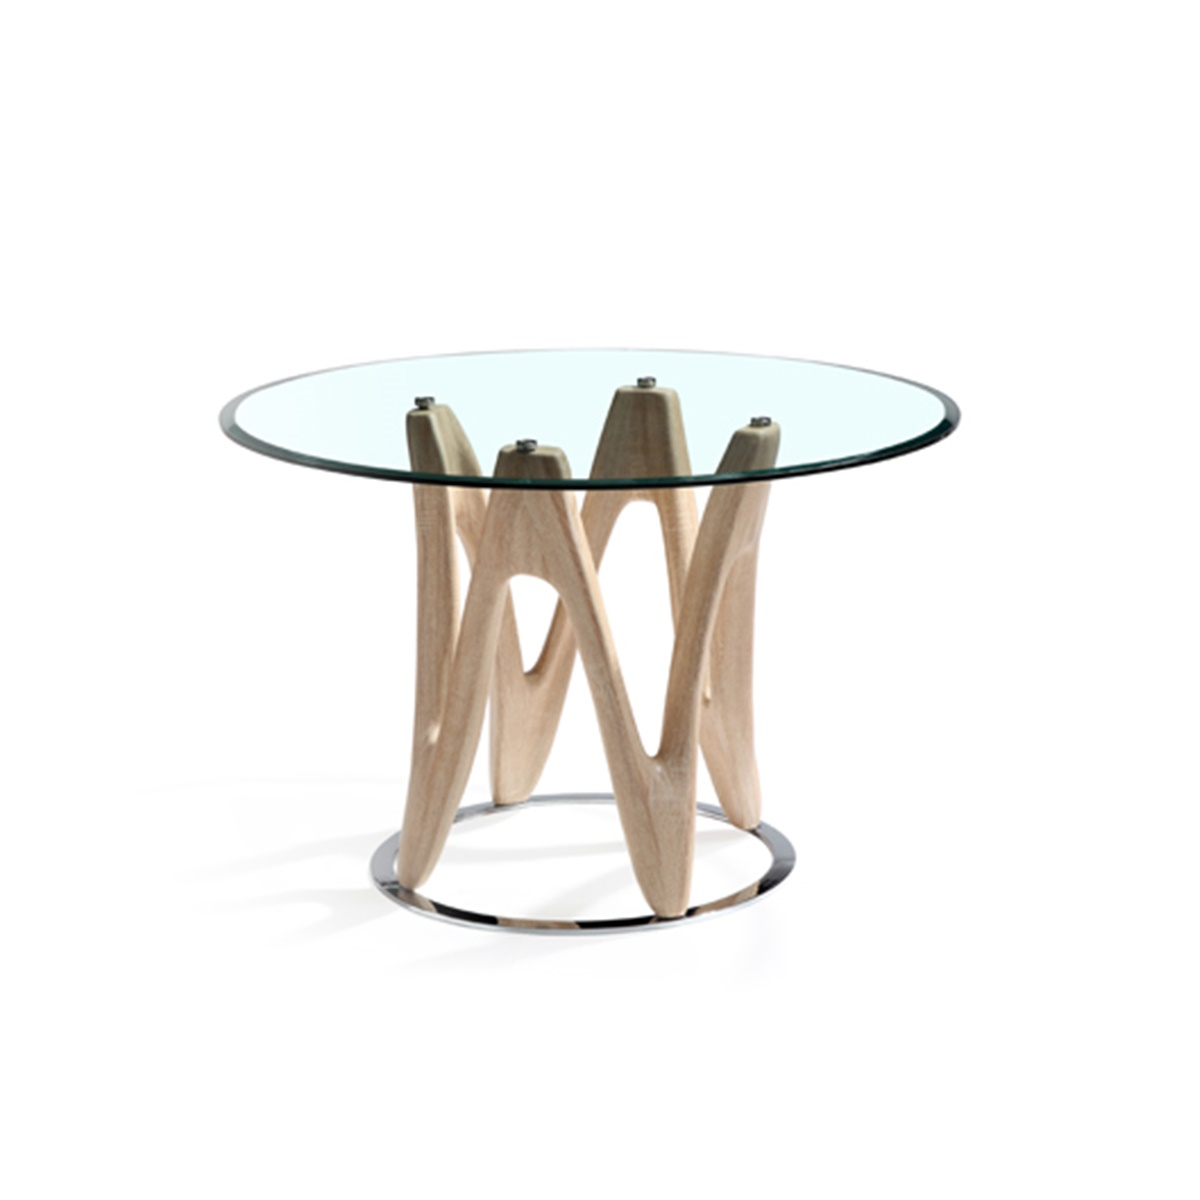 Dune Round Glass and Oak Dining Table 4 Seater